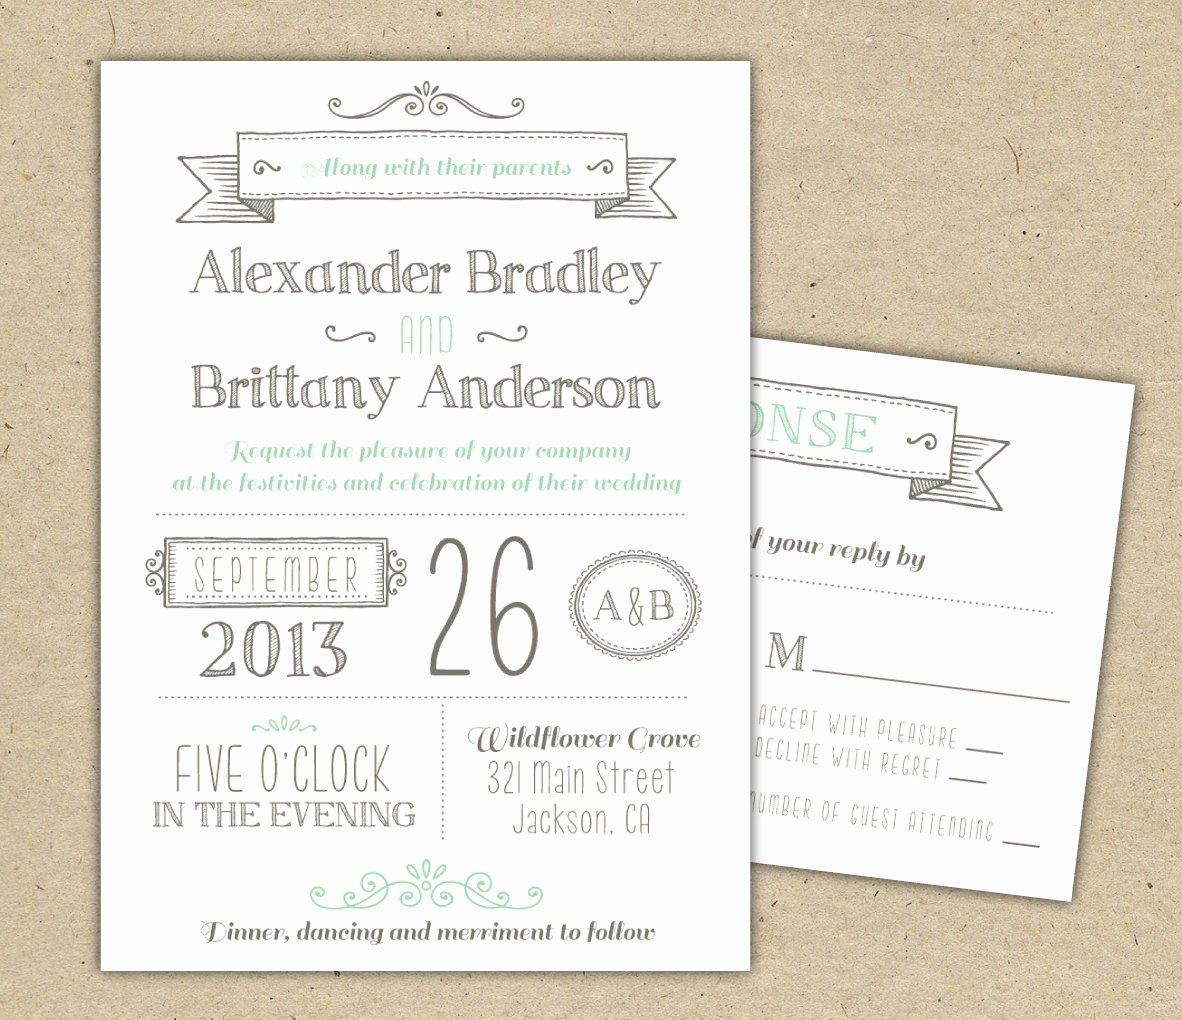 Wedding Invitation Wording Template Beautiful Wedding Invitation 1041 Sample Modern Invitation Template